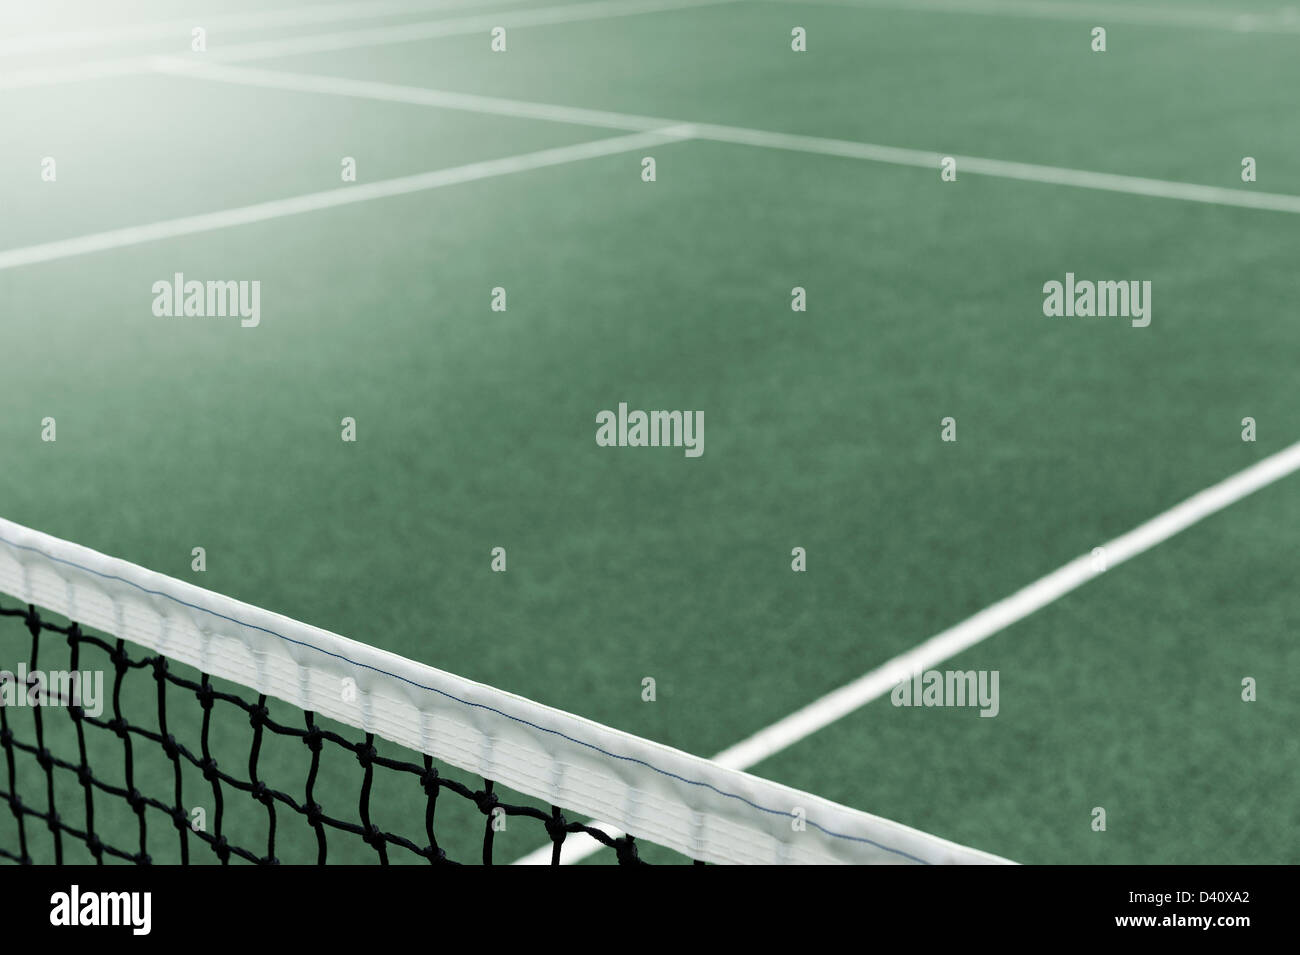 View of a Tennis Court with the net in the foreground - Stock Image